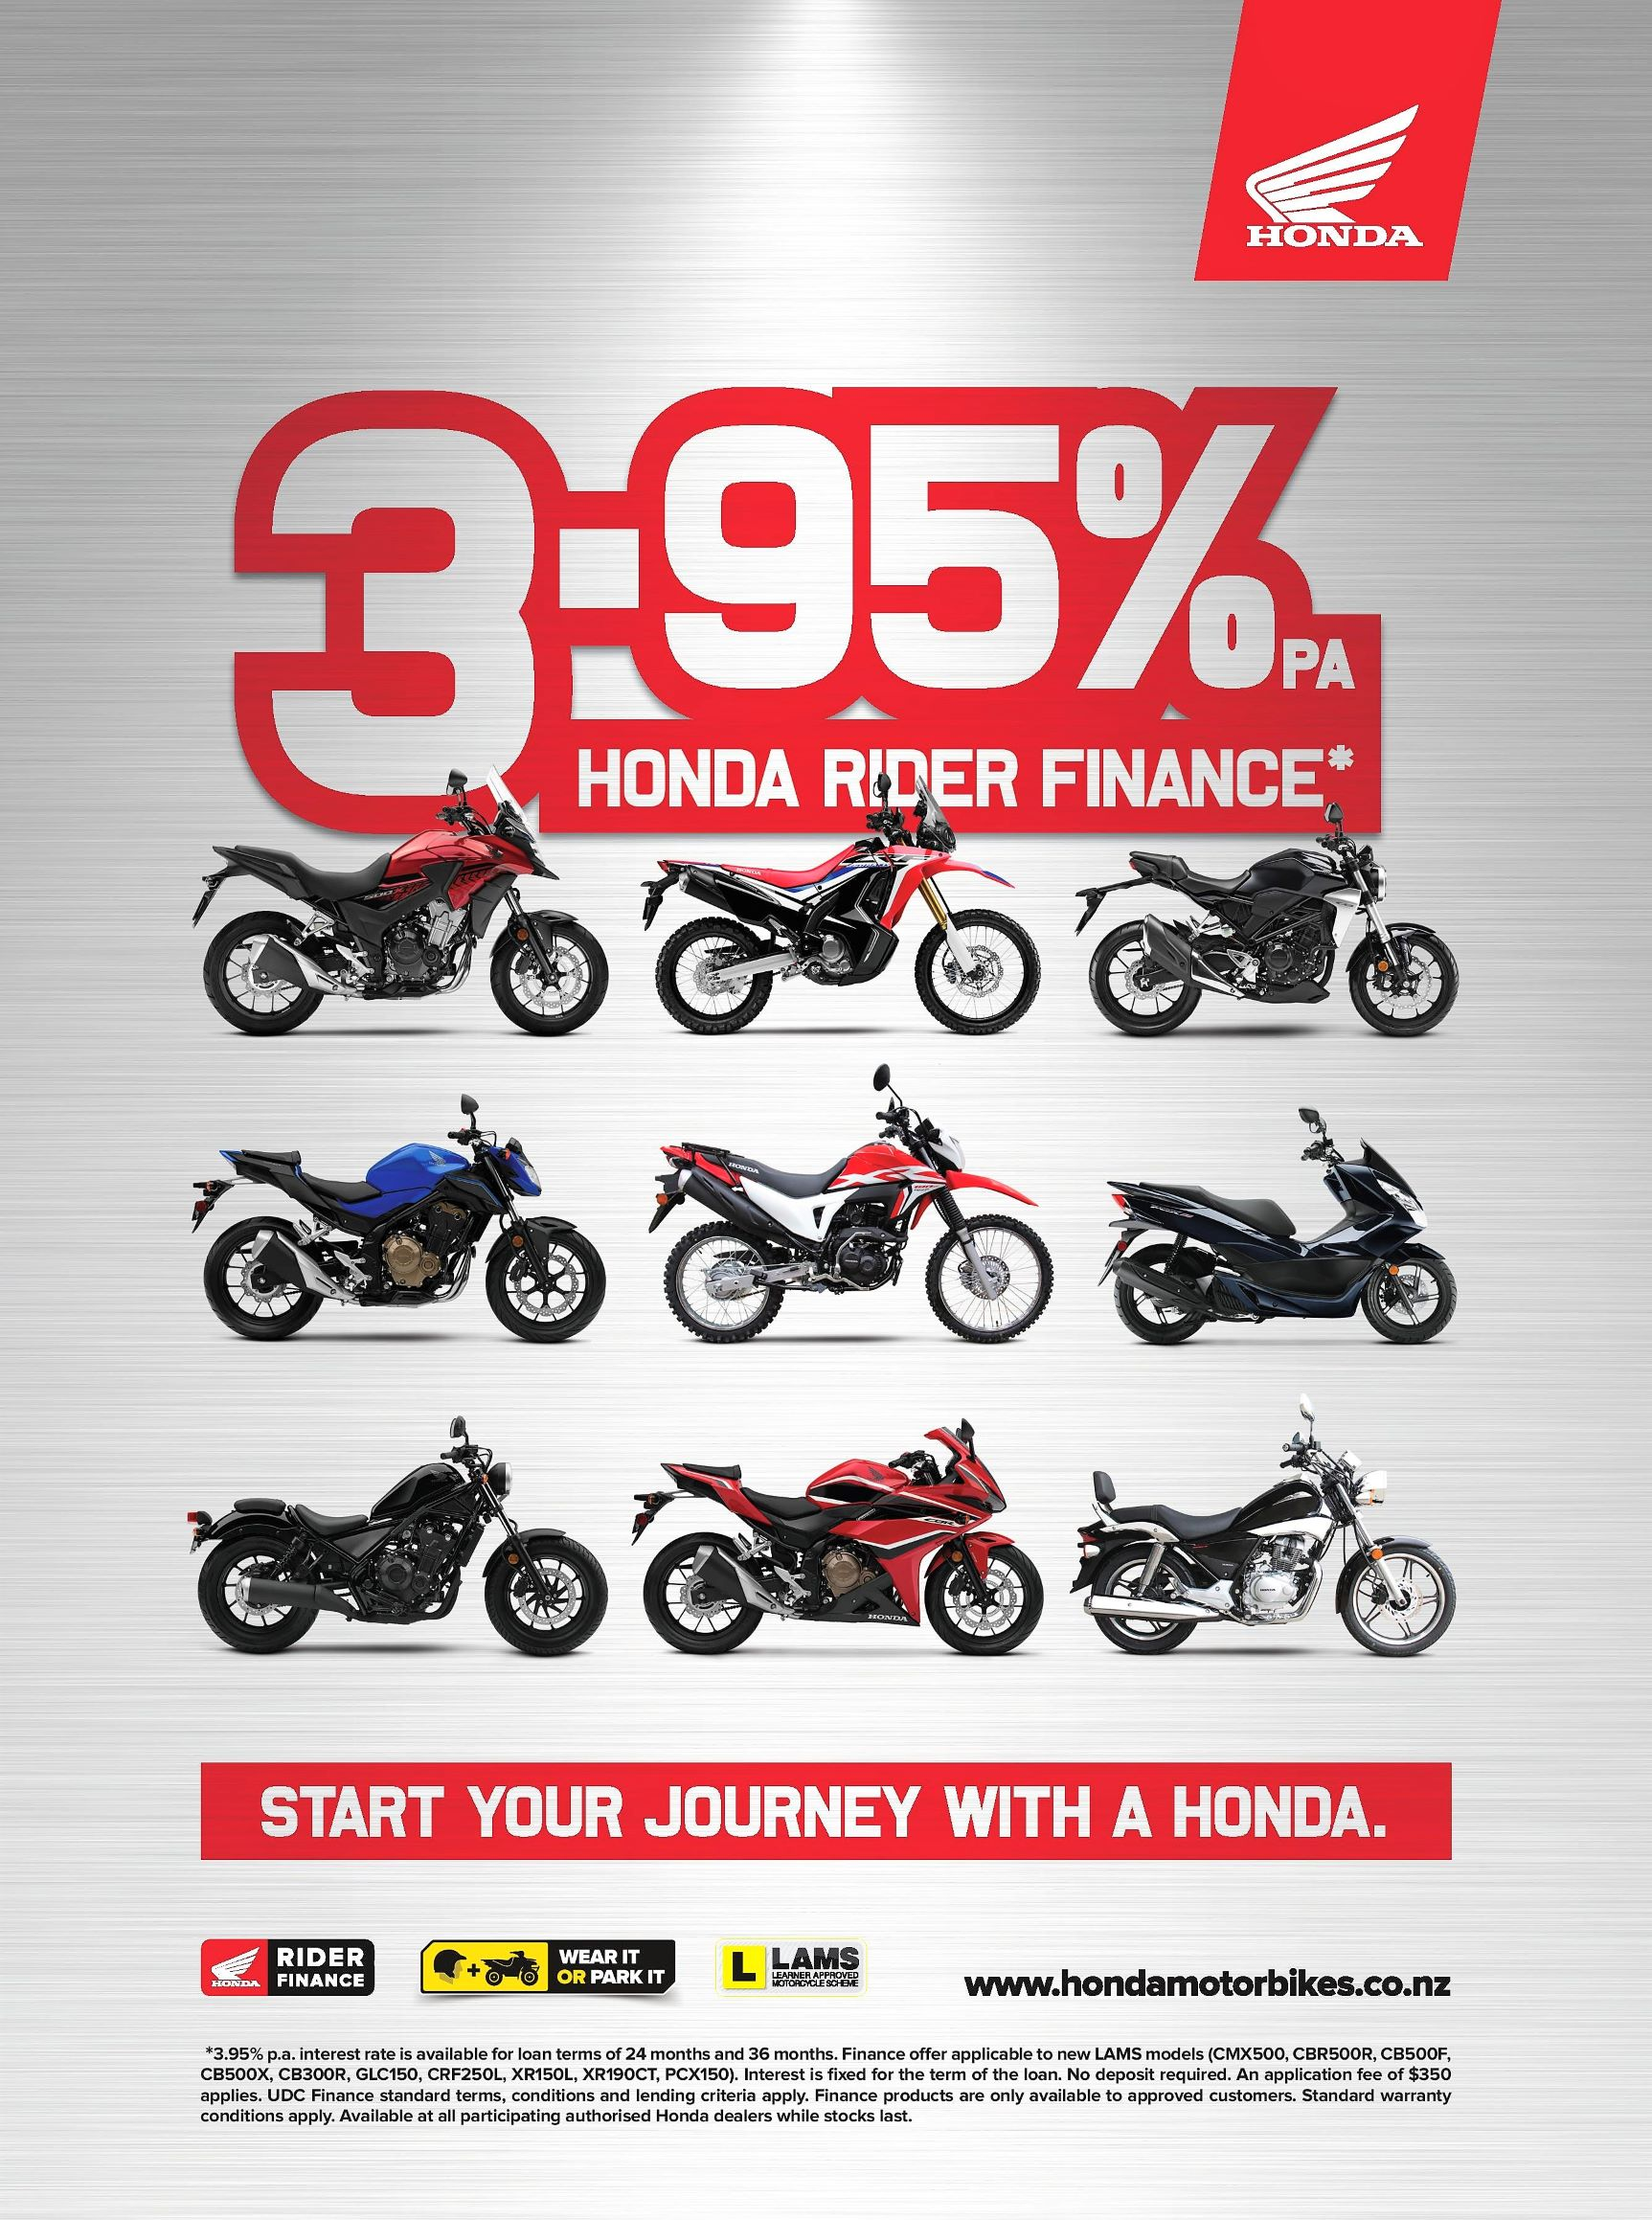 3.95% Finance on the Honda LAMS Range